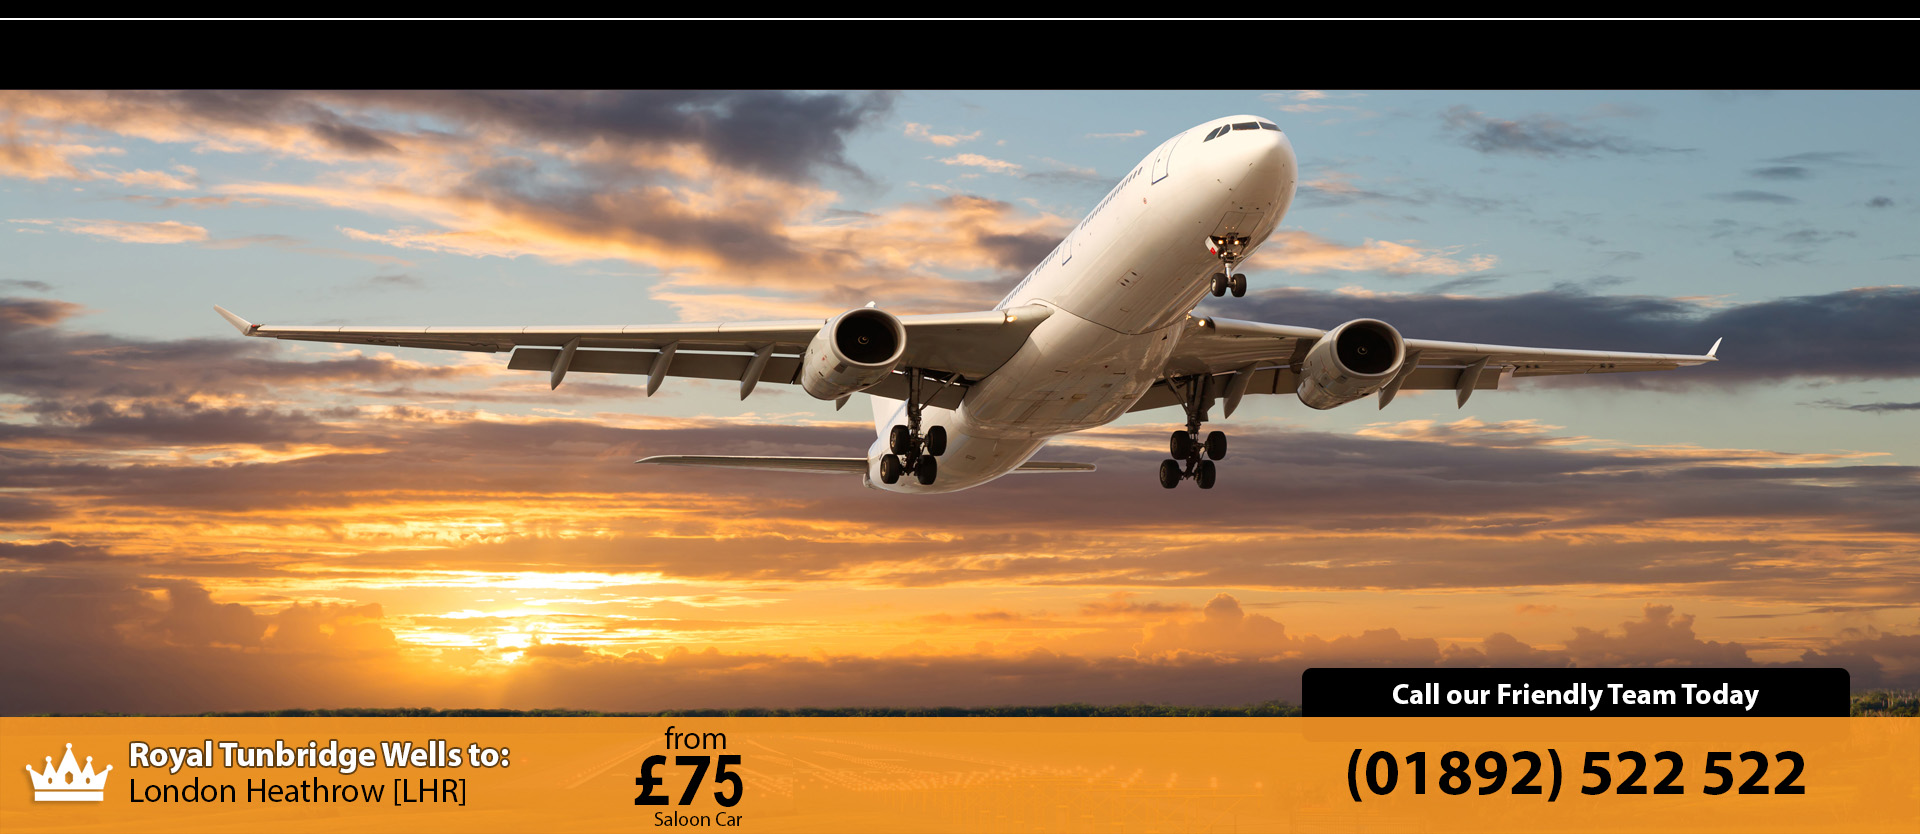 Taxi from Tunbridge Wells to Heathrow Airport from £70